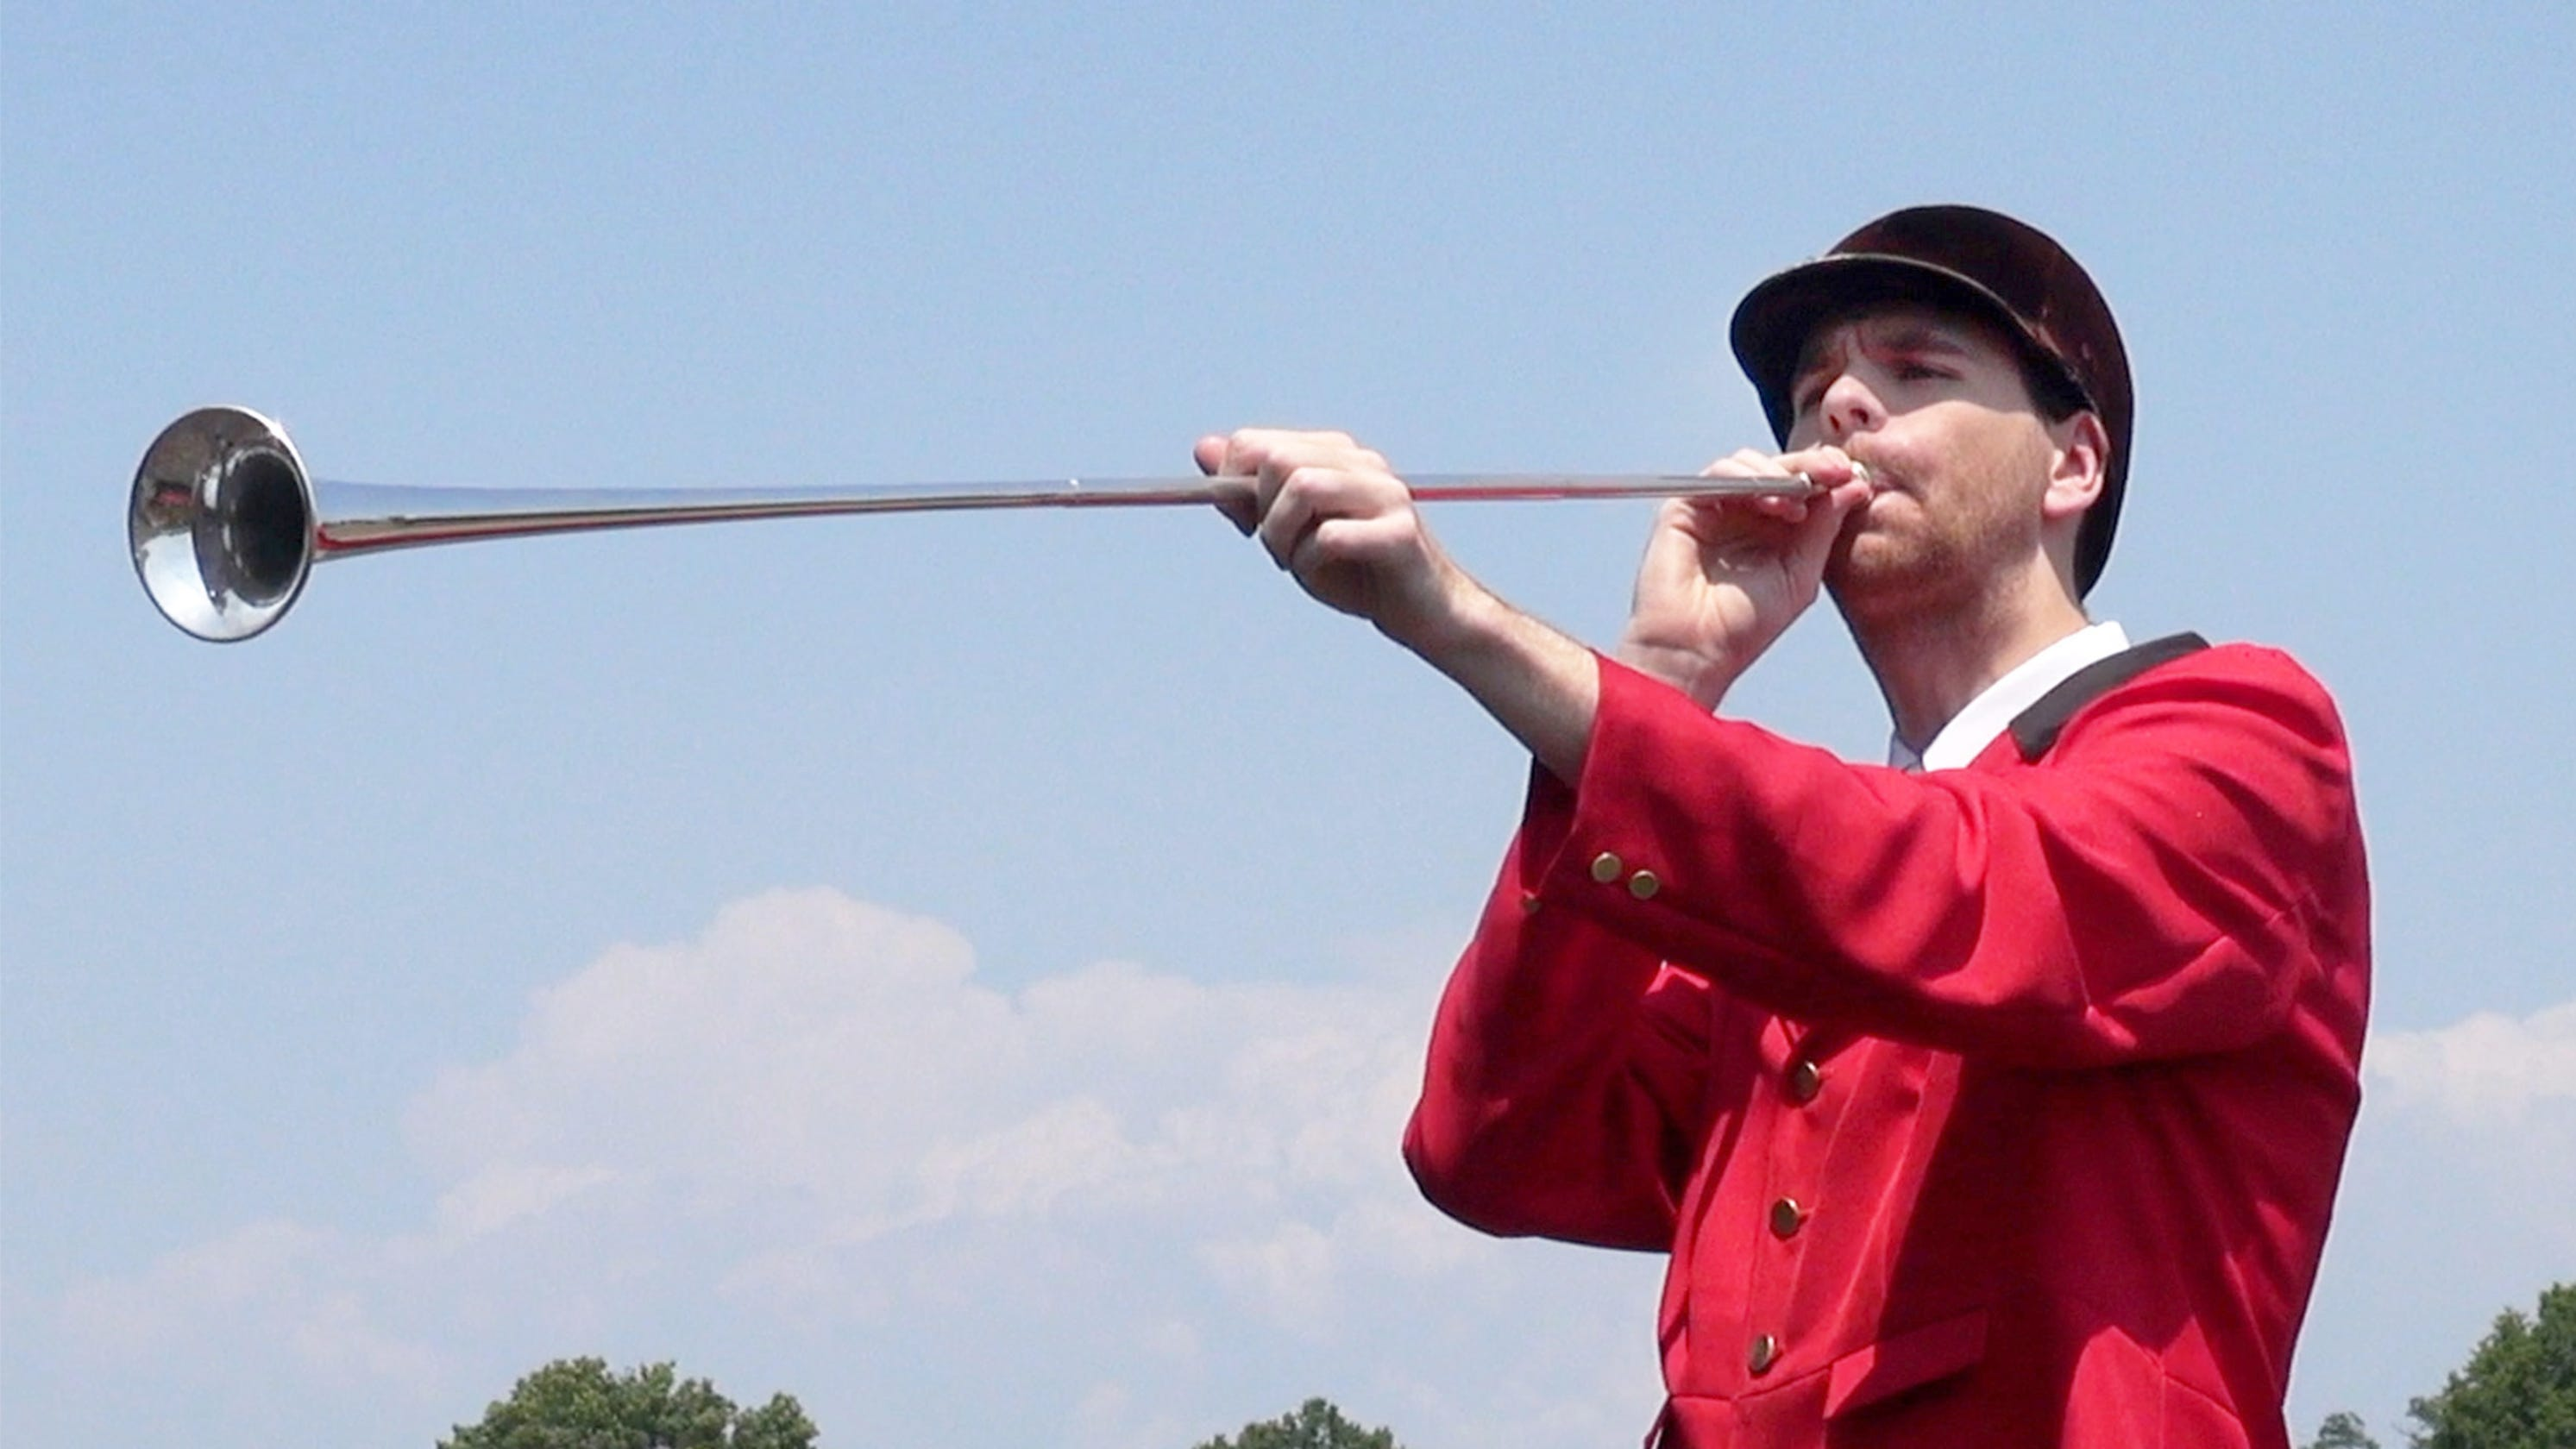 Monmouth Park bugler keeps tradition alive and well with